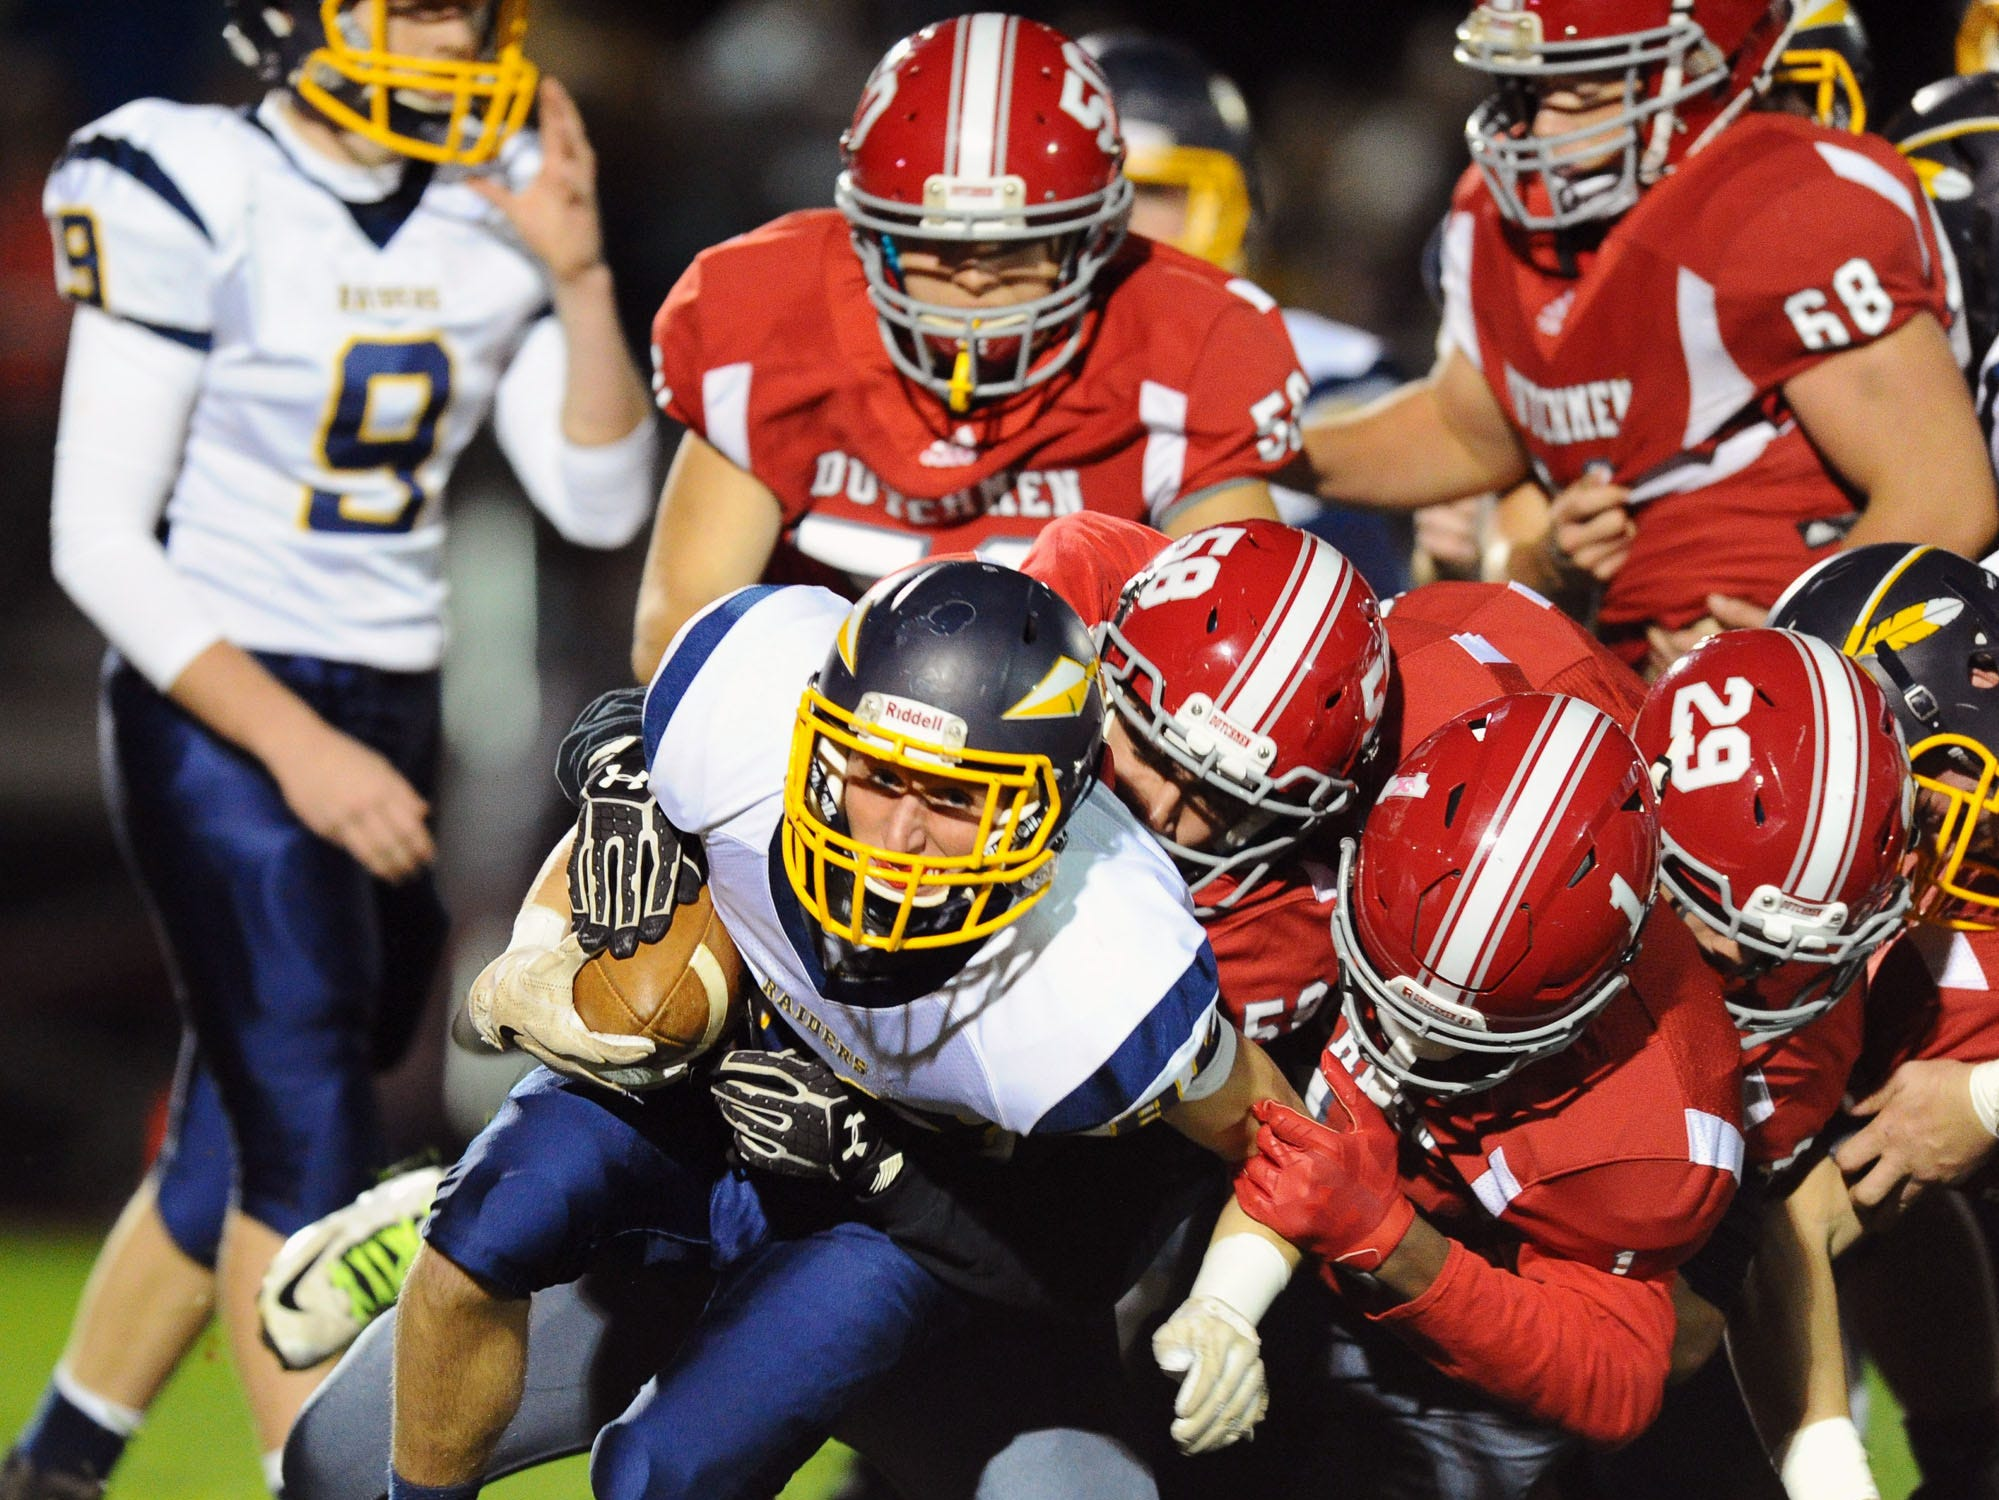 Elco's Evan Huey (88) is stopped by a herd of AC defenders on this first half punt return.